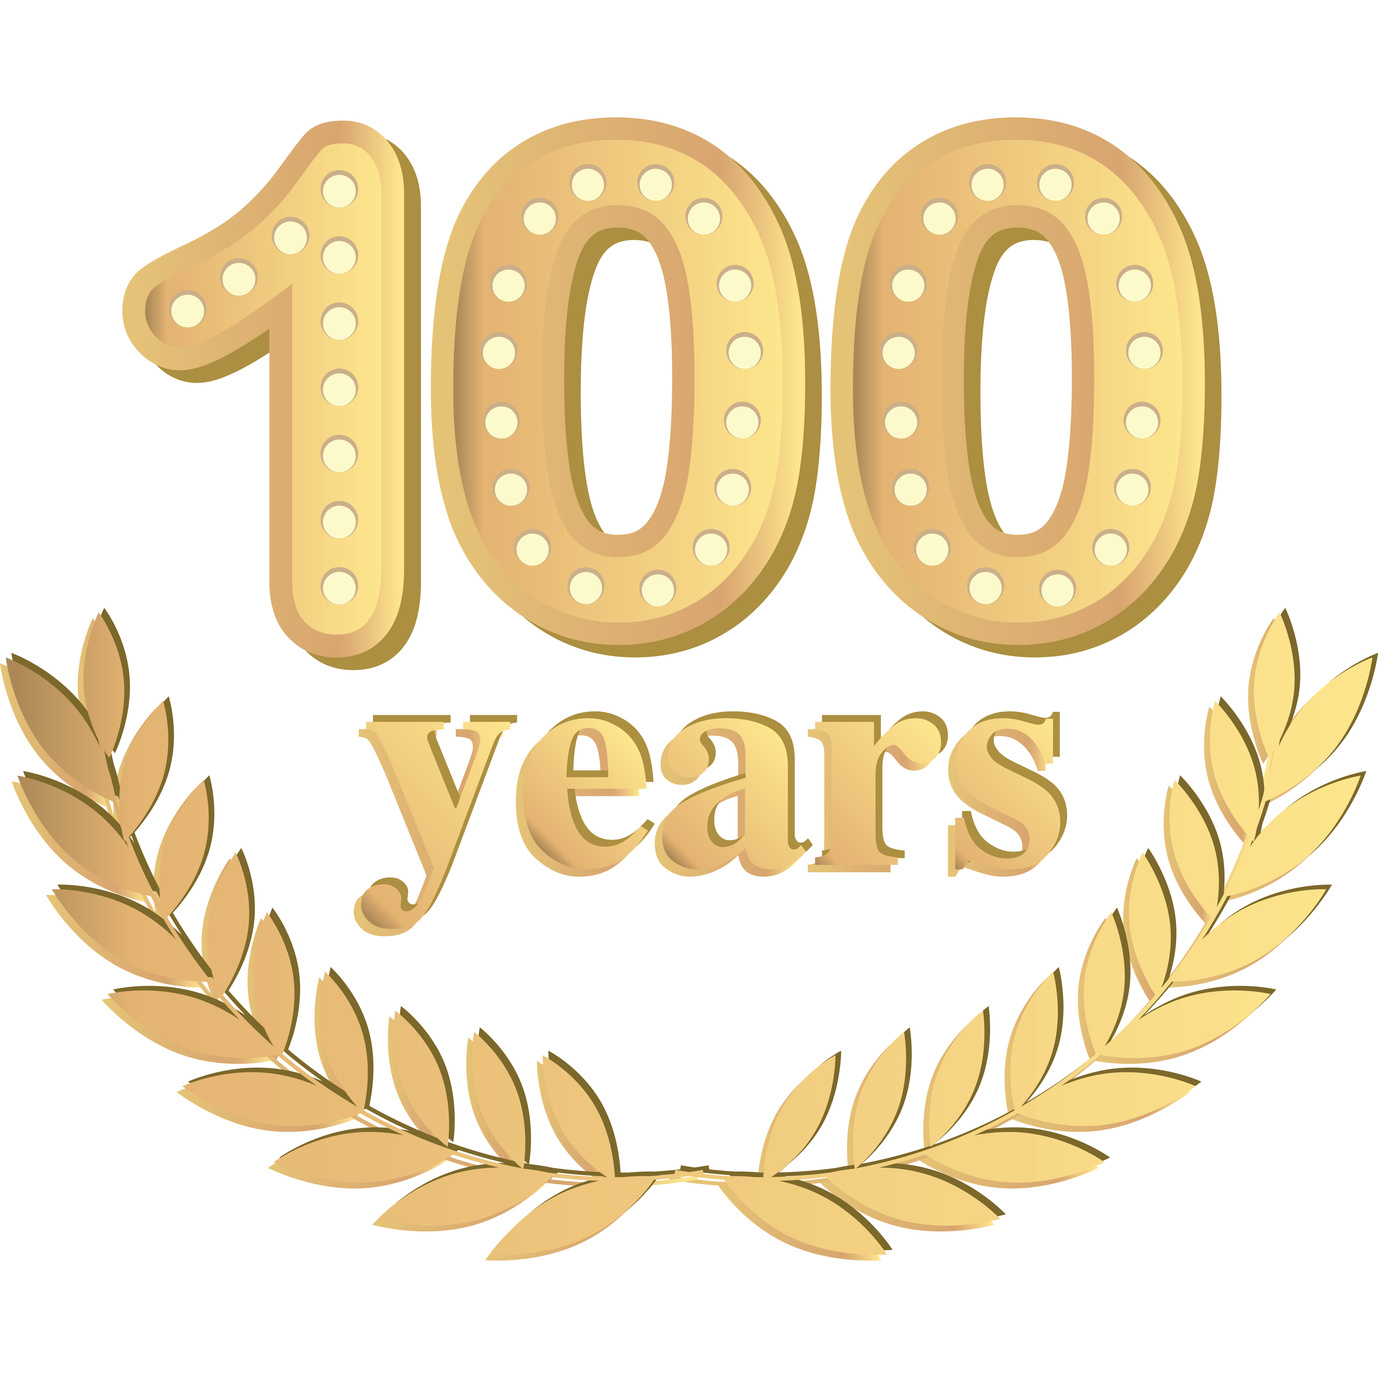 Sbr roofingcelebrate years with. 100 clipart 100 year